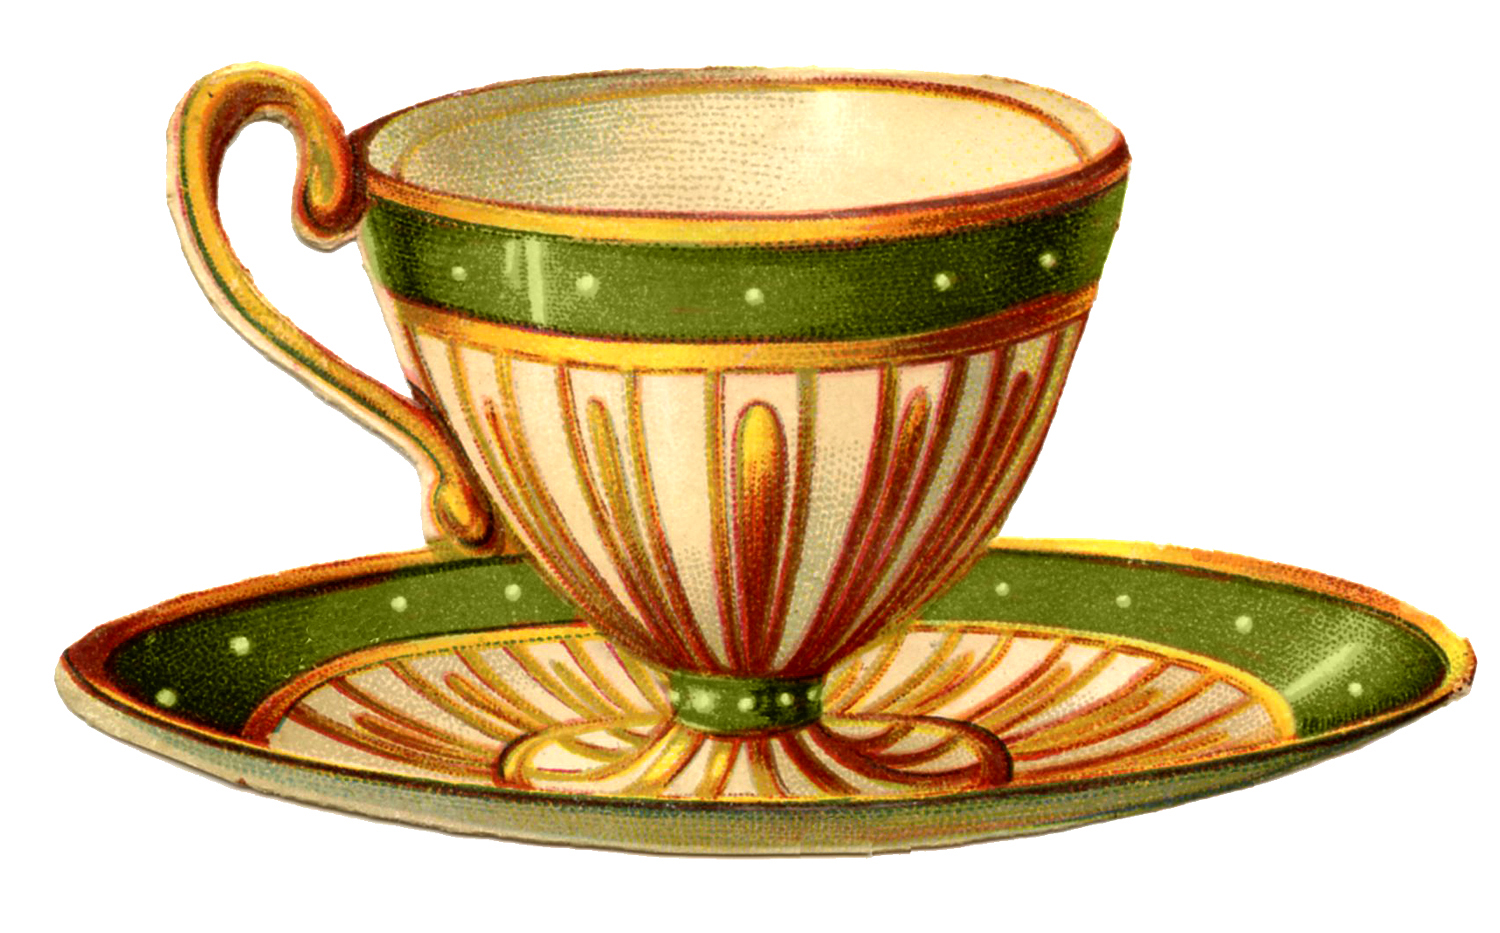 http://thegraphicsfairy.com/wp-content/uploads/blogger/-rfoTf-PDQlE/TxTKEY6KpeI/AAAAAAAAQN8/v2FpmpcN8VY/s1600/teacup%2Bvintage%2Bimage%2BGraphicsFairy007green..jpg